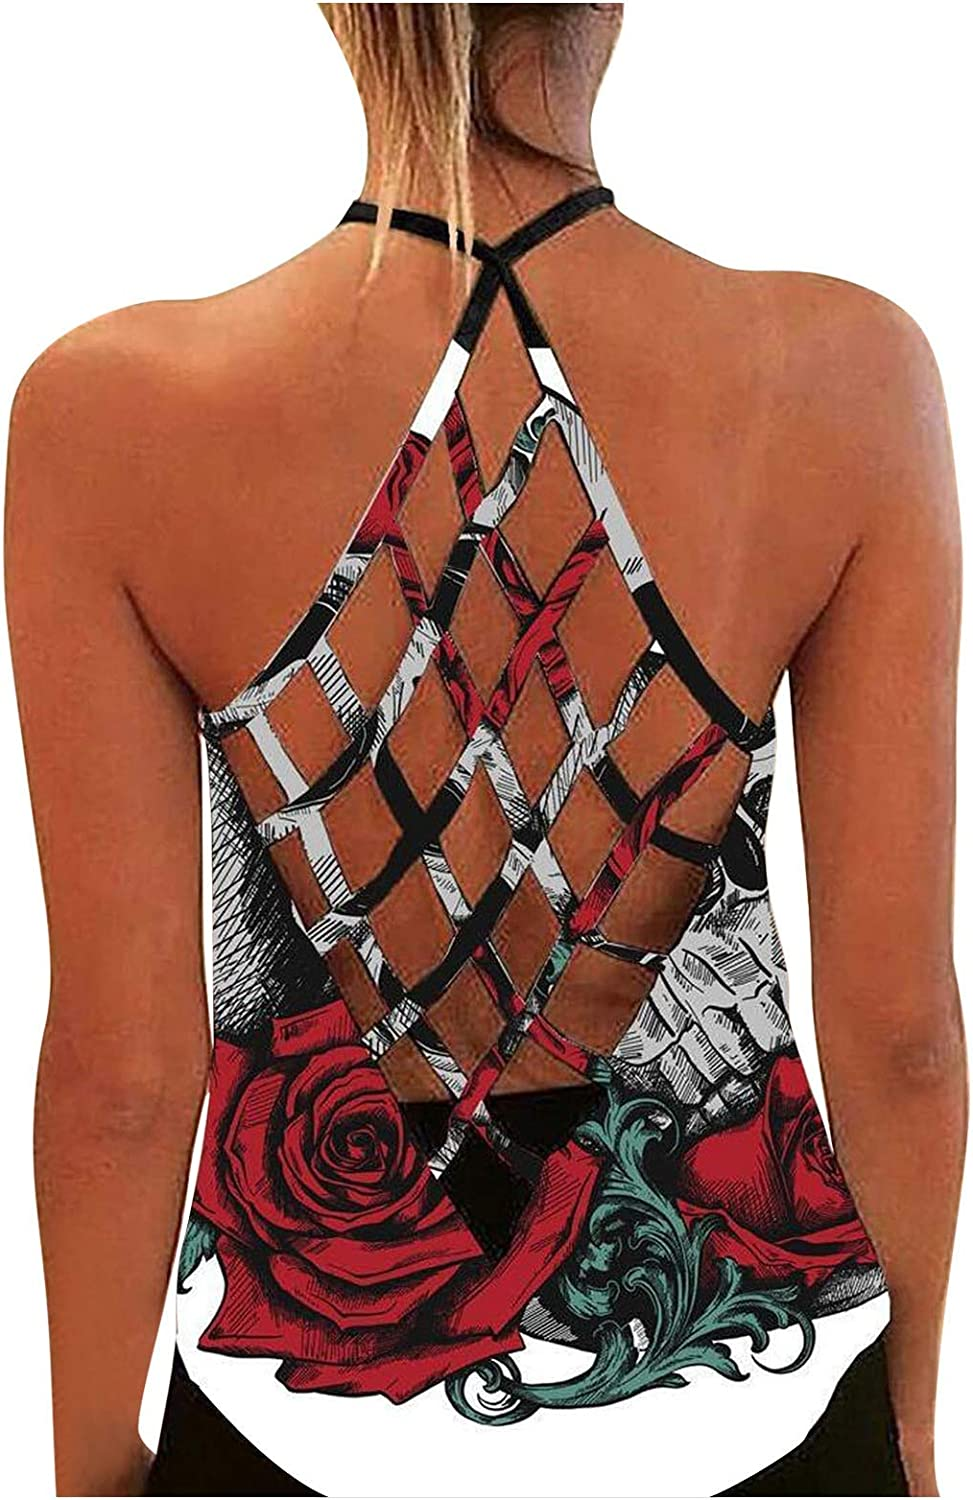 AODONG Tank Tops for Women, Womens Summer Tops O Neck Strap Graphic Printed Crop Tops Casual Loose Tops Sleeveless Blouses